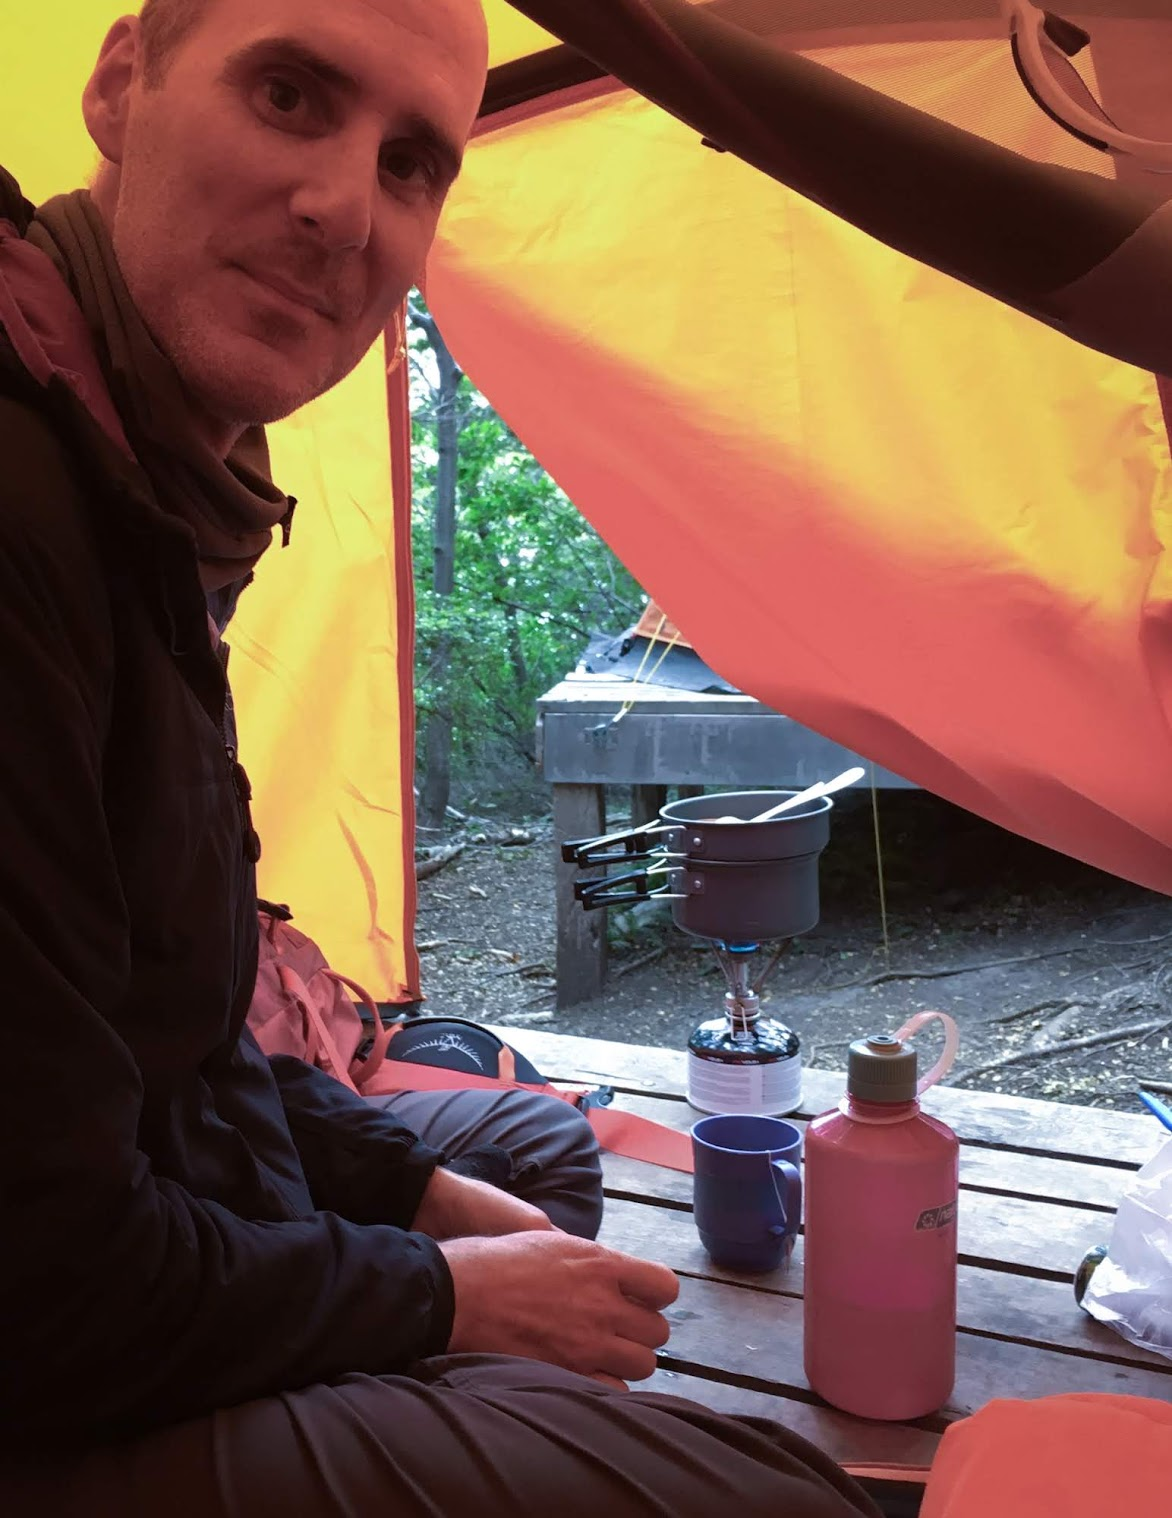 It continued to rain all evening so we were stuck to making food from inside our tent.